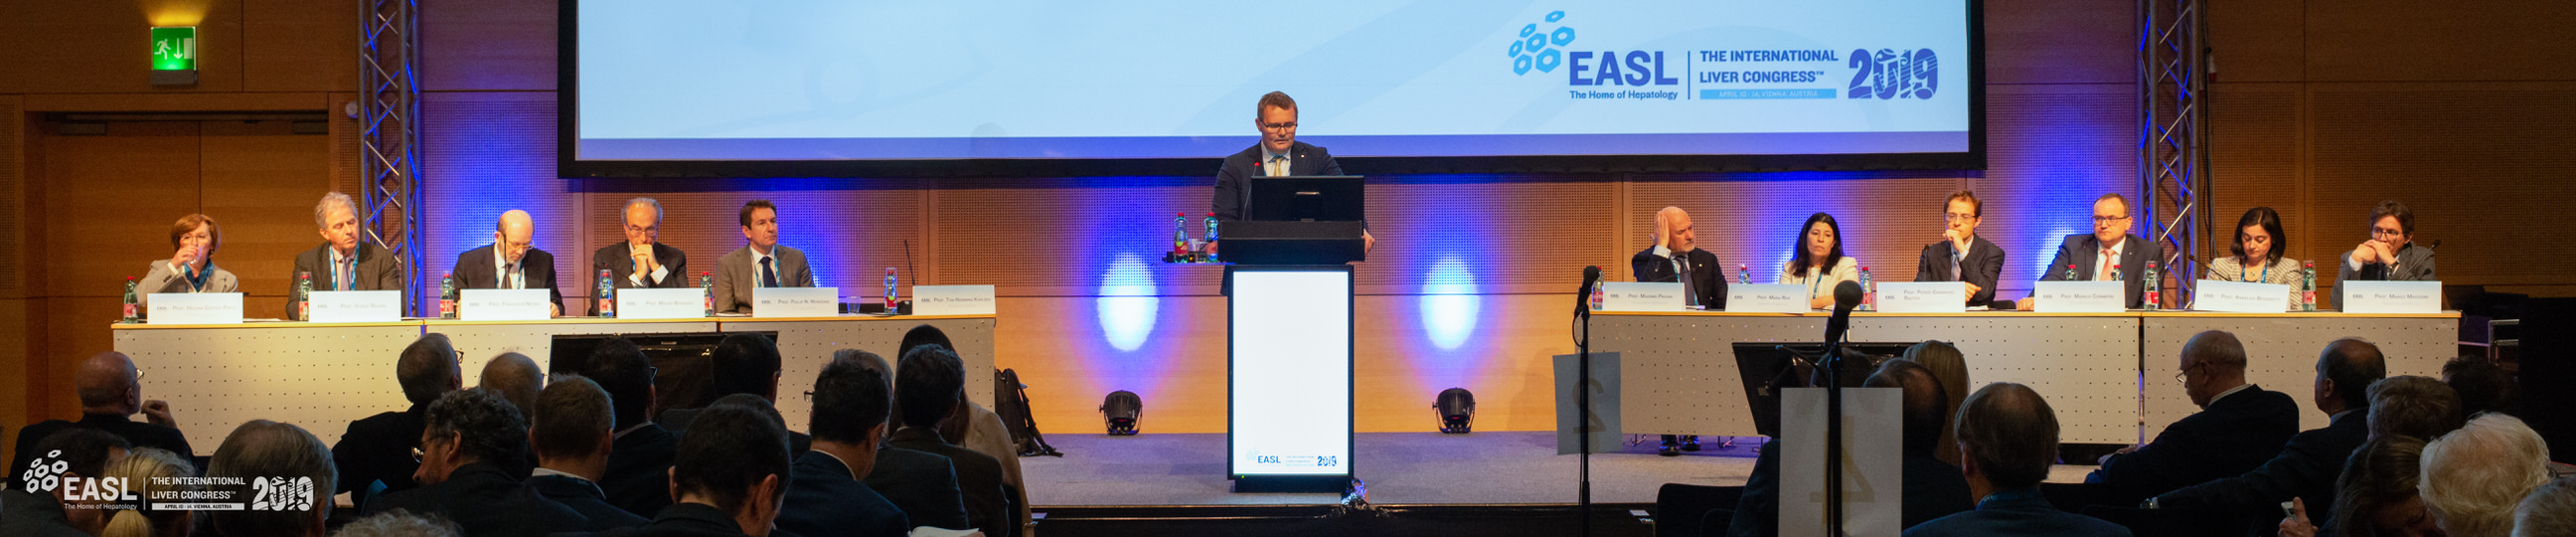 EASL General Assembly Elects New Board And Committee Members